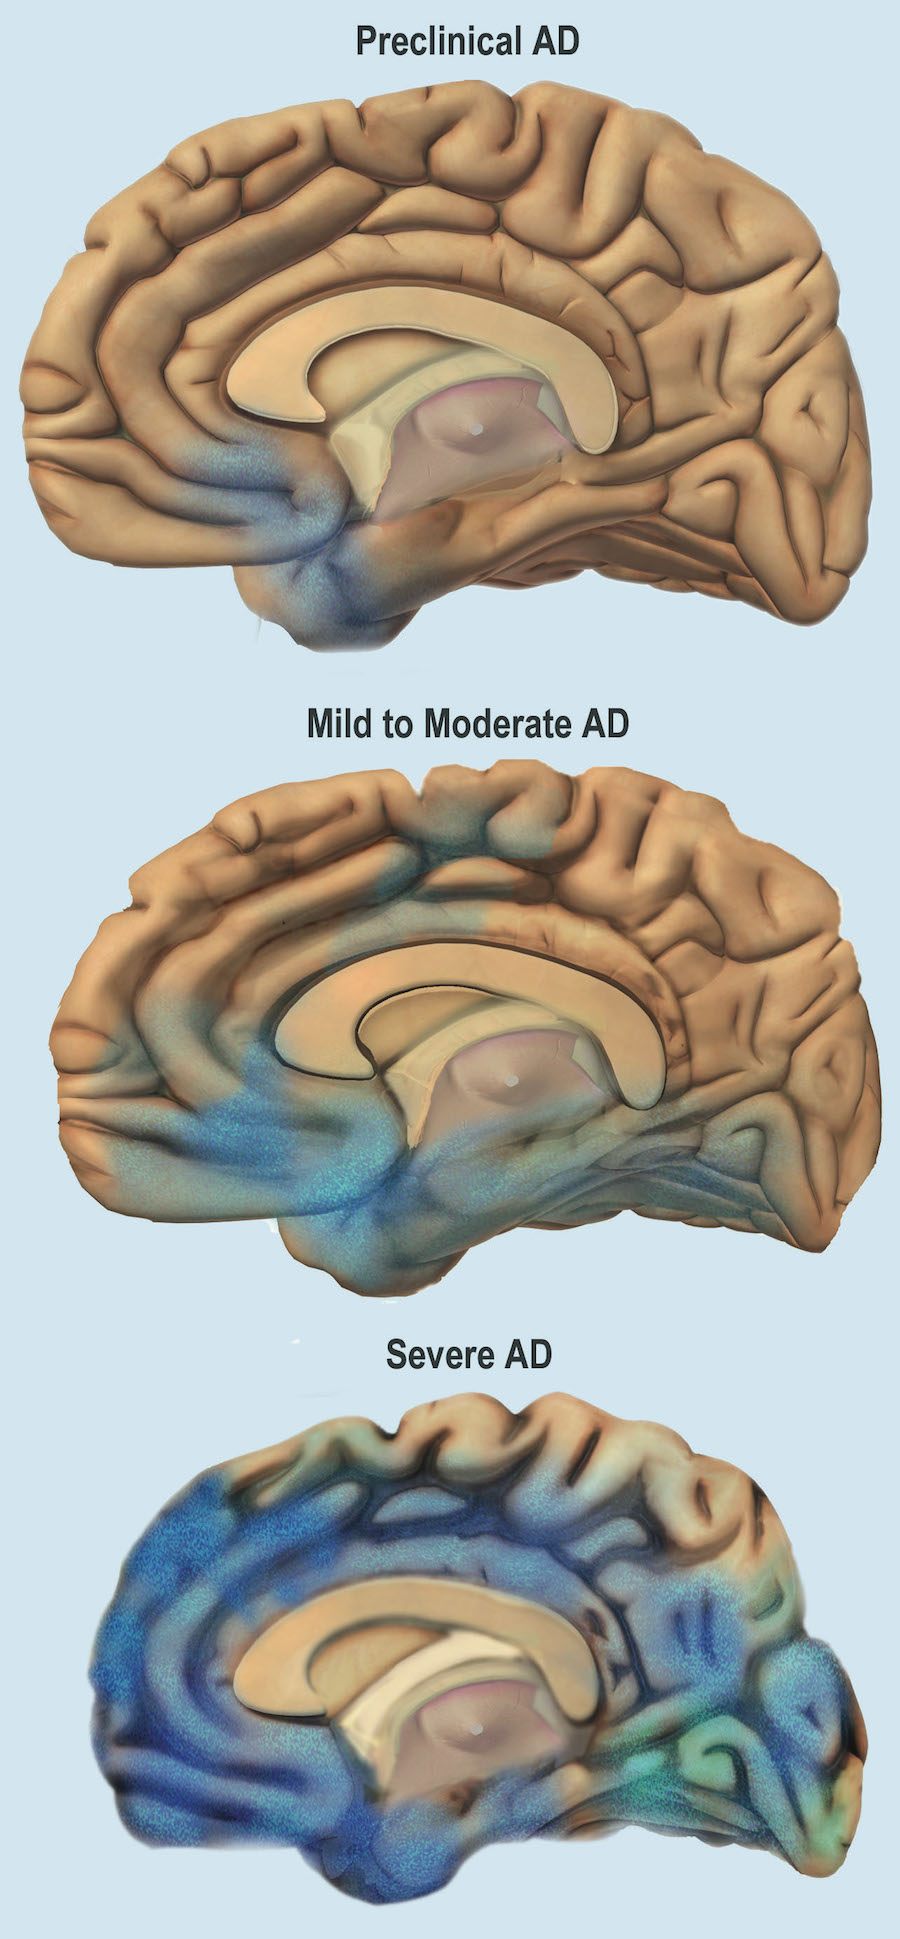 Various stages of brain deterioration due to Alzheimer's